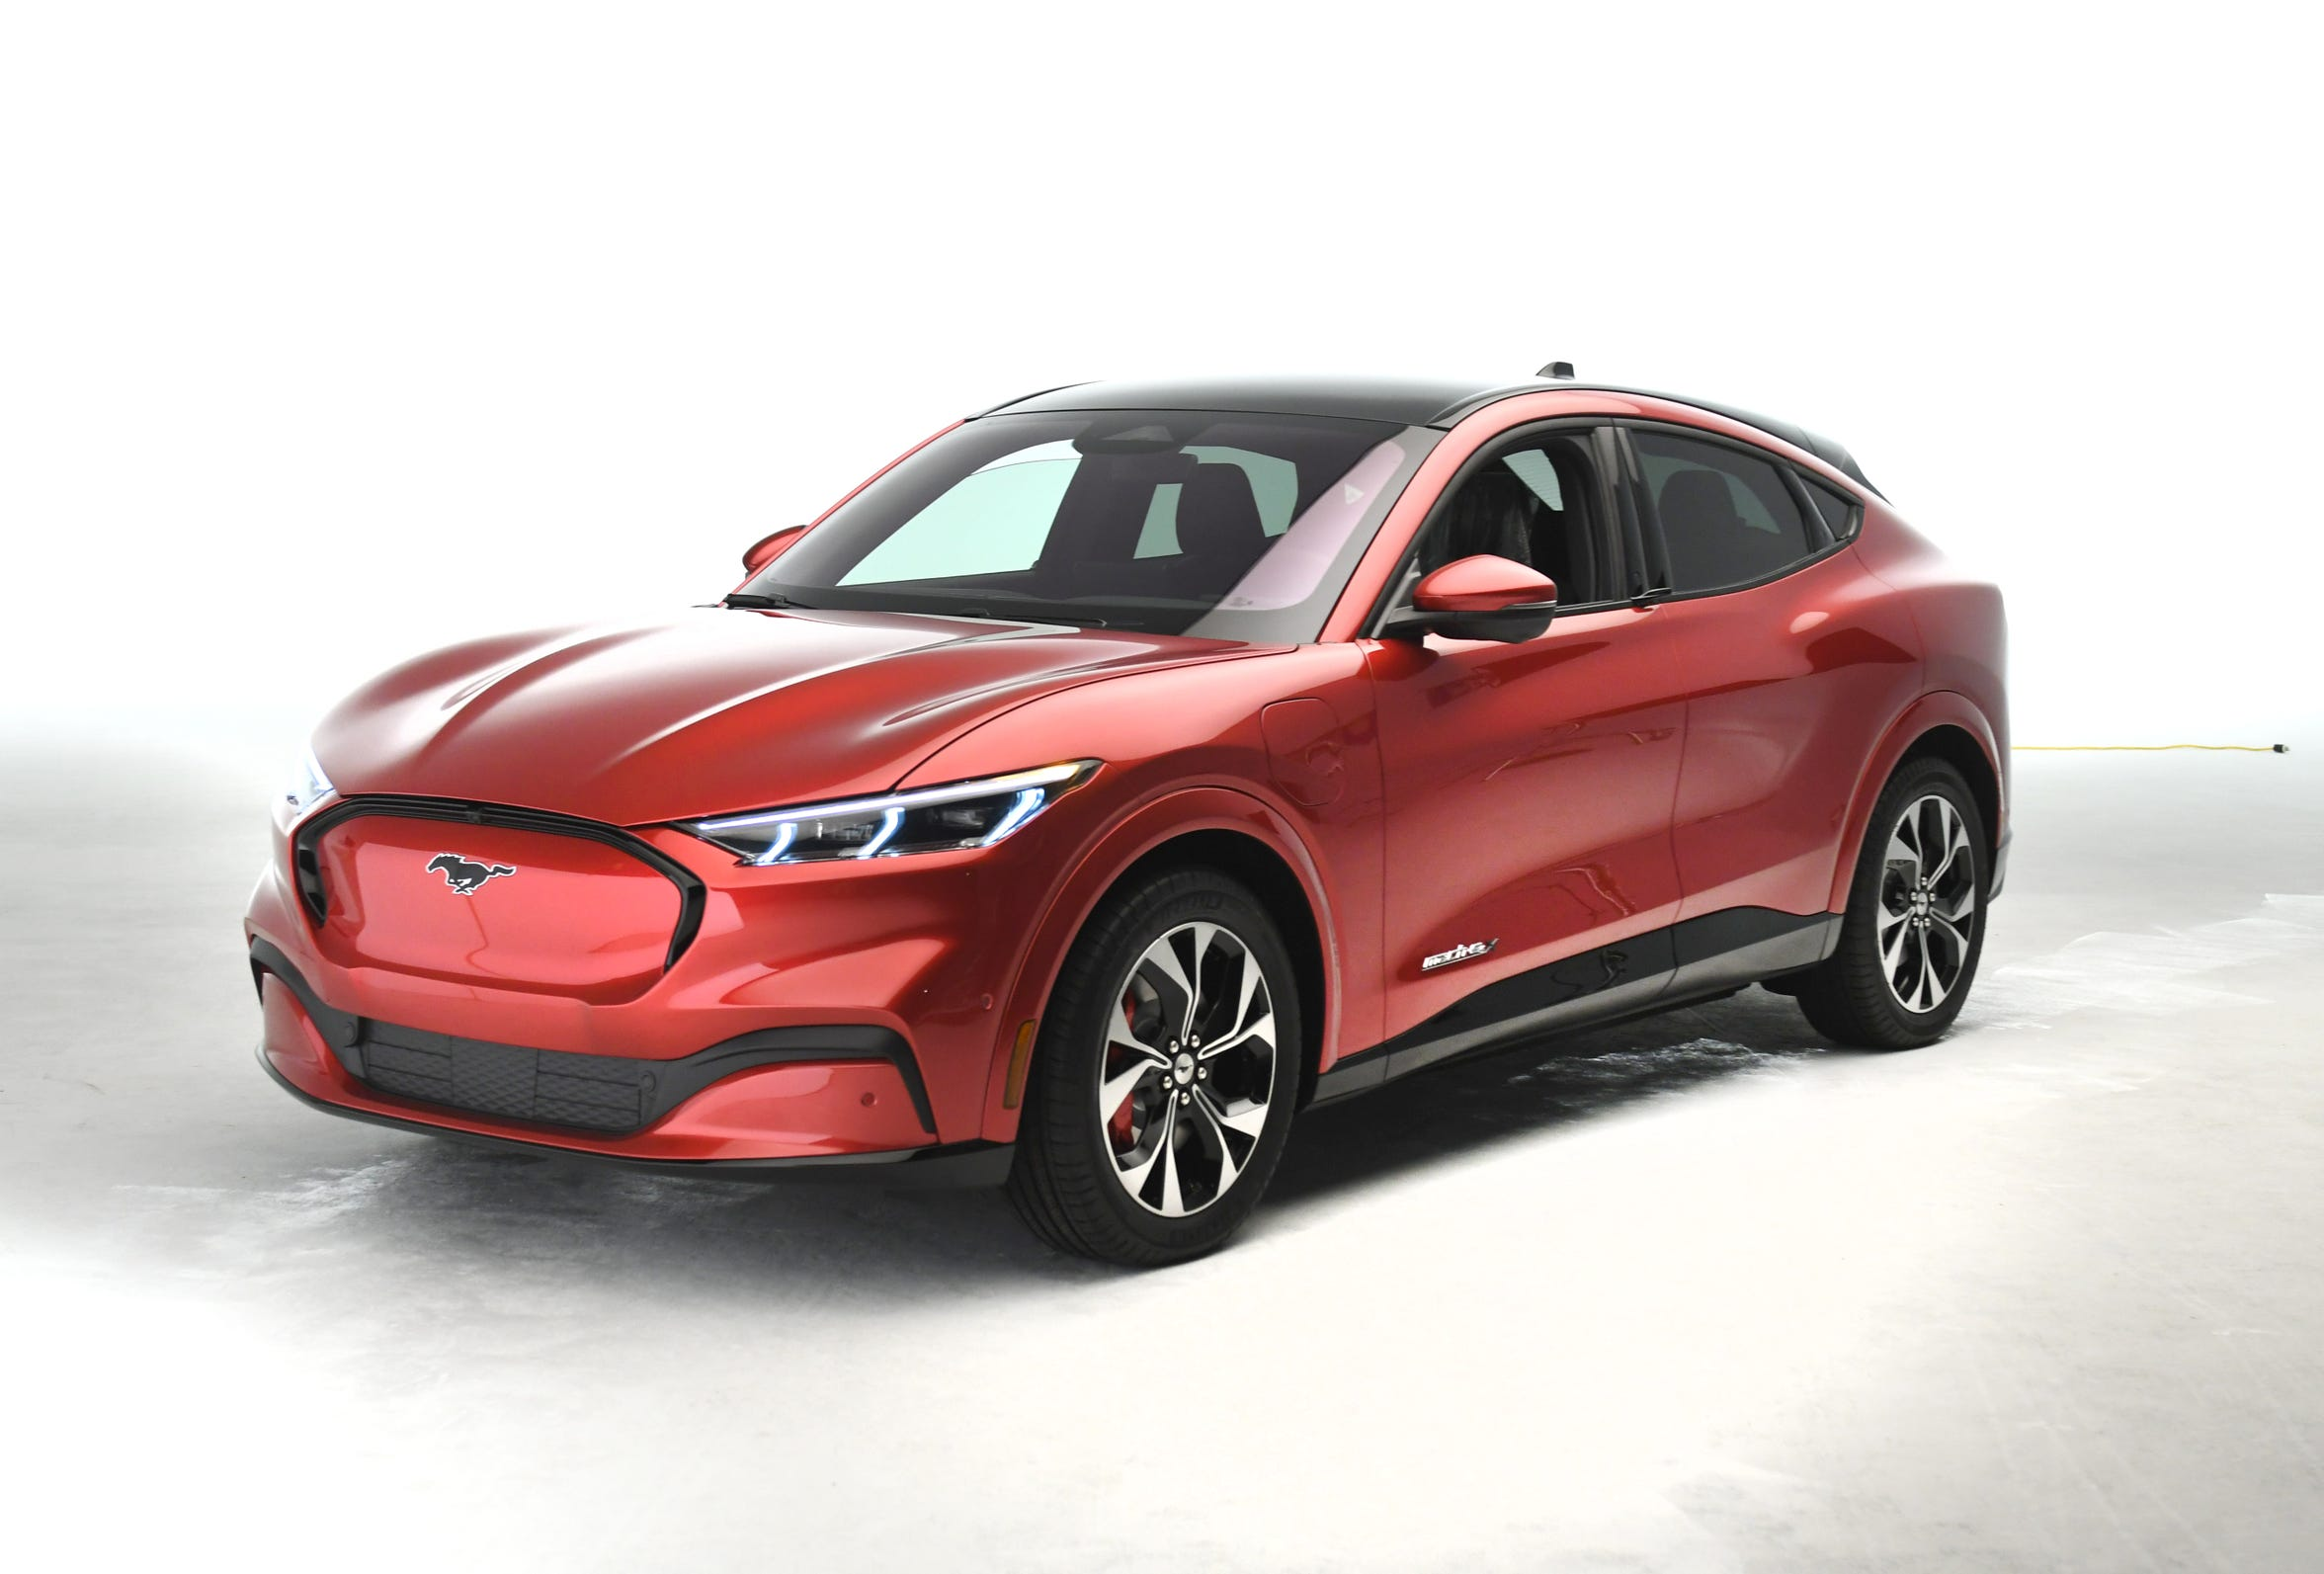 The Ford Mach E4x is the newest electric SUV based on the Ford Mustang as seen on Tuesday, October 29, 2019.